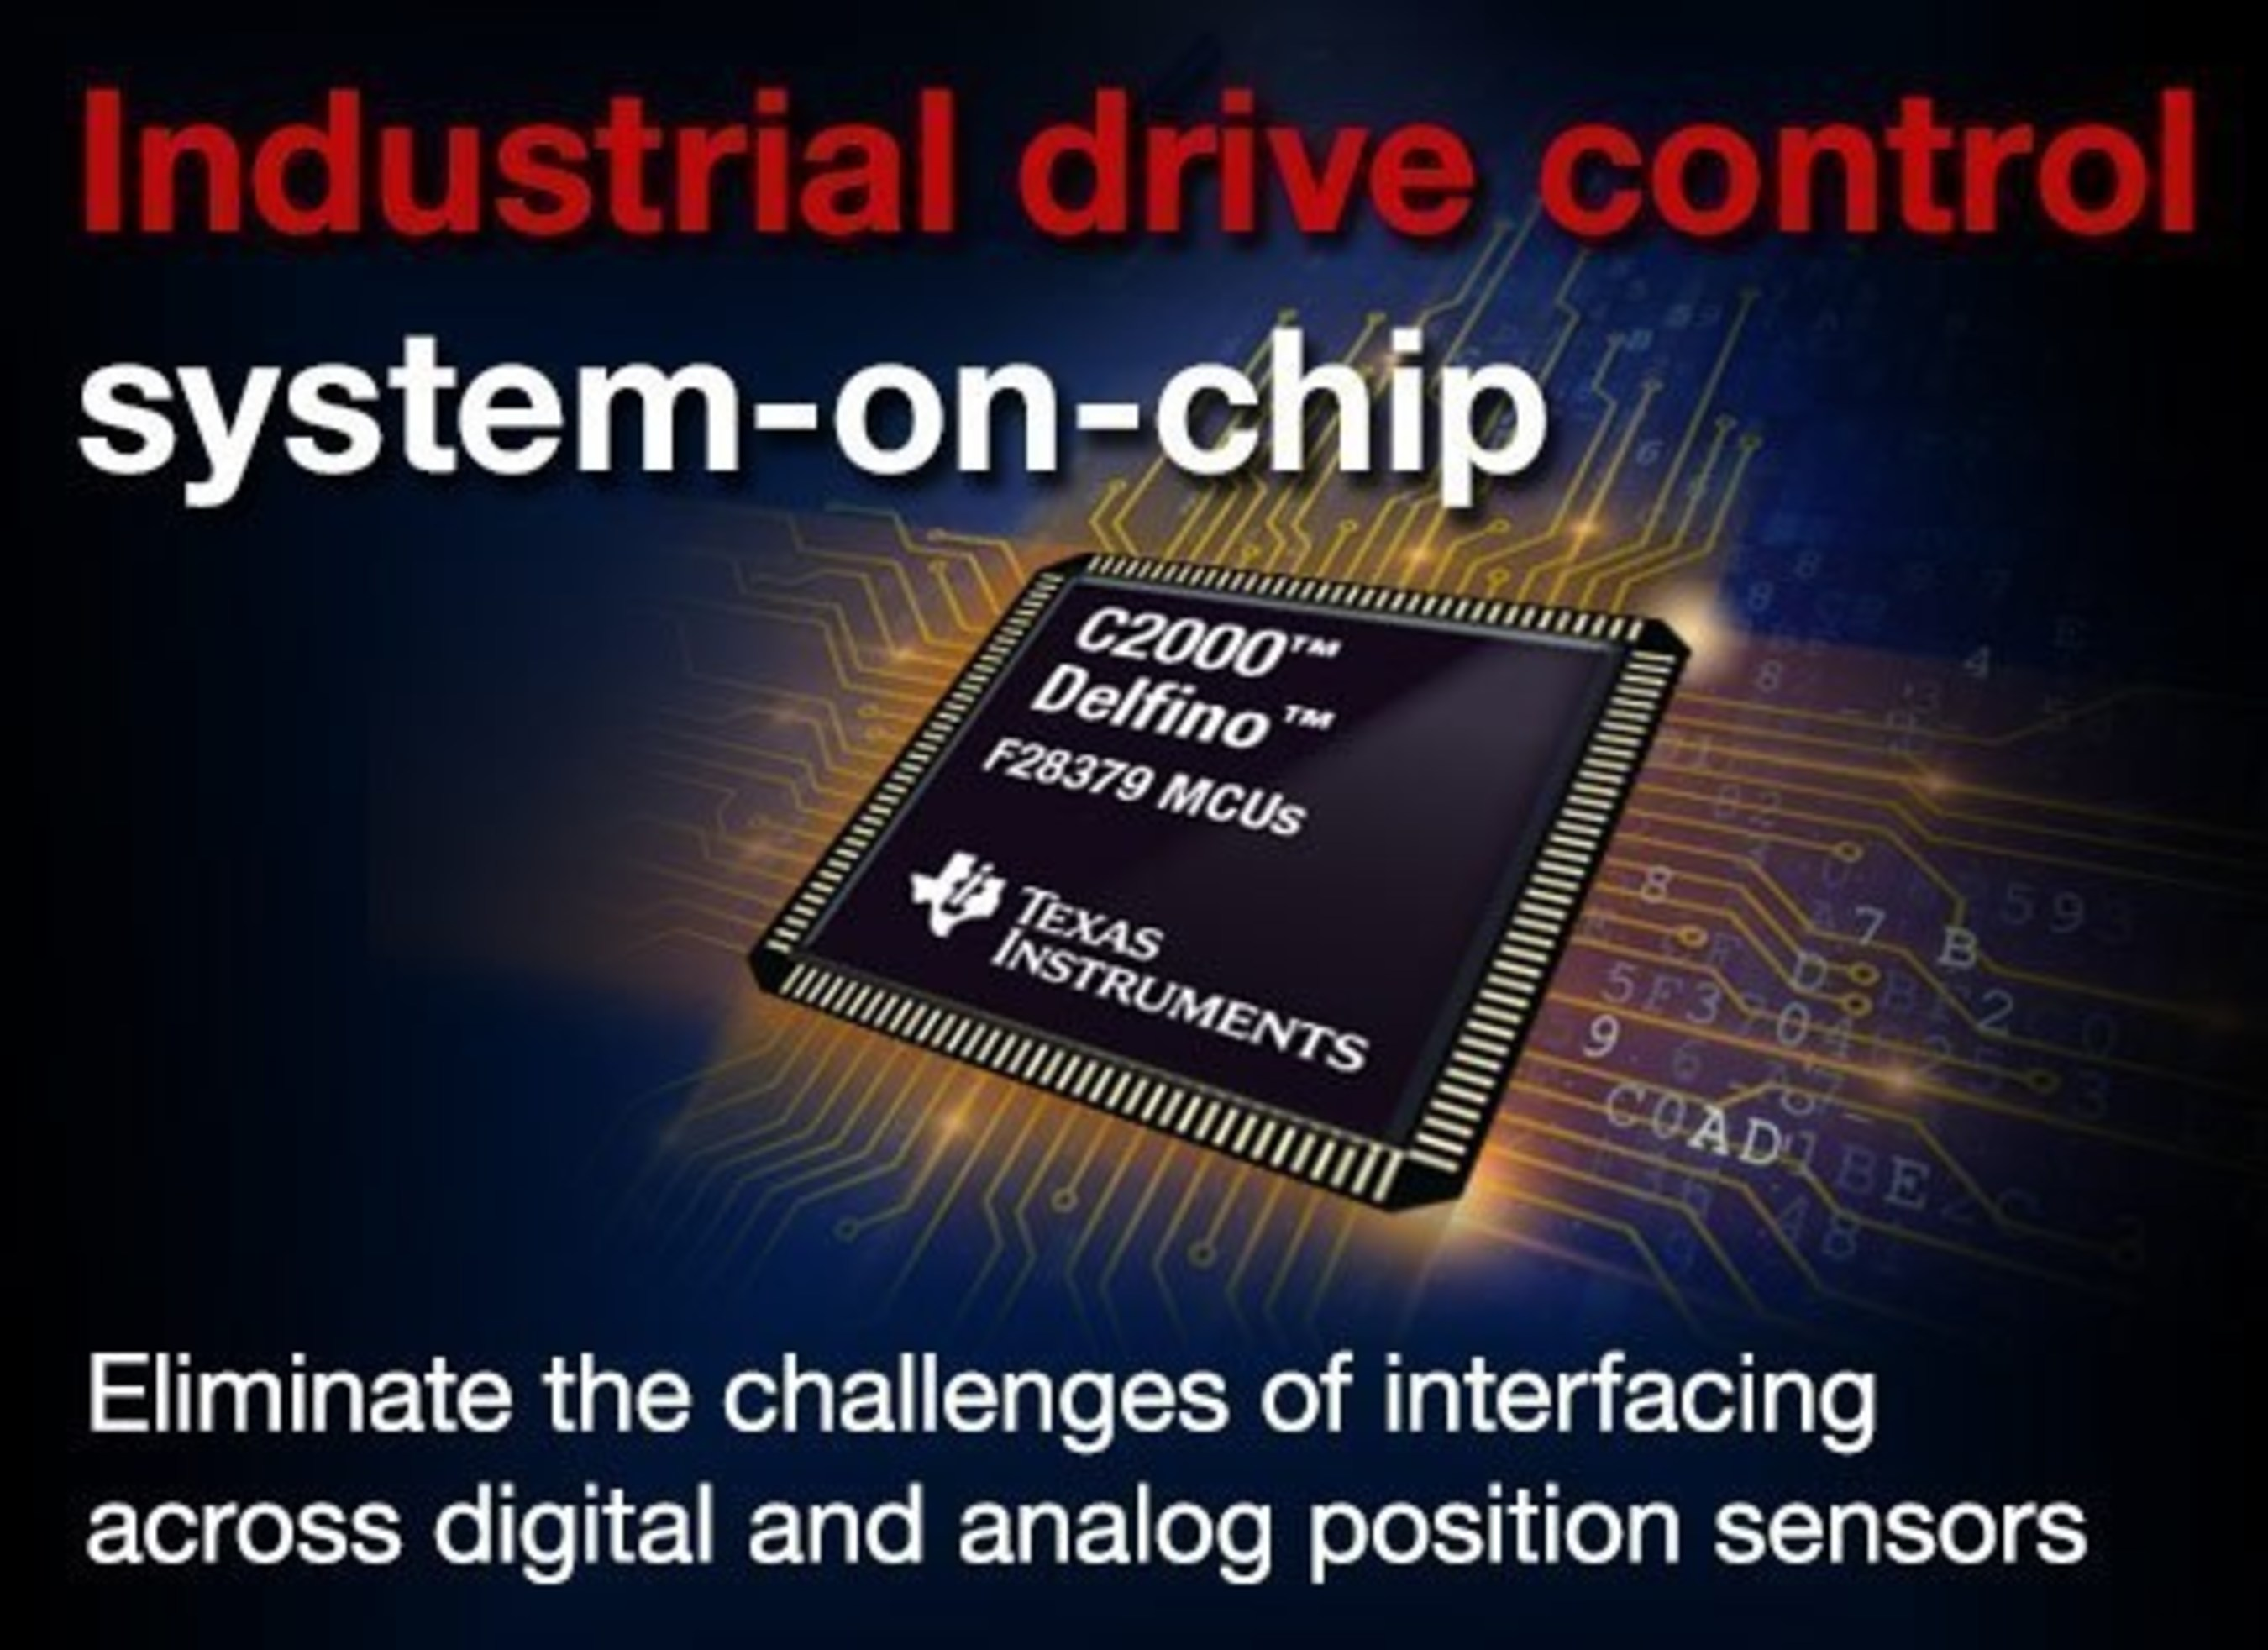 New C2000(TM) Delfino(TM) MCUs and DesignDRIVE Position Manager technology eliminate challenges of interfacing ...